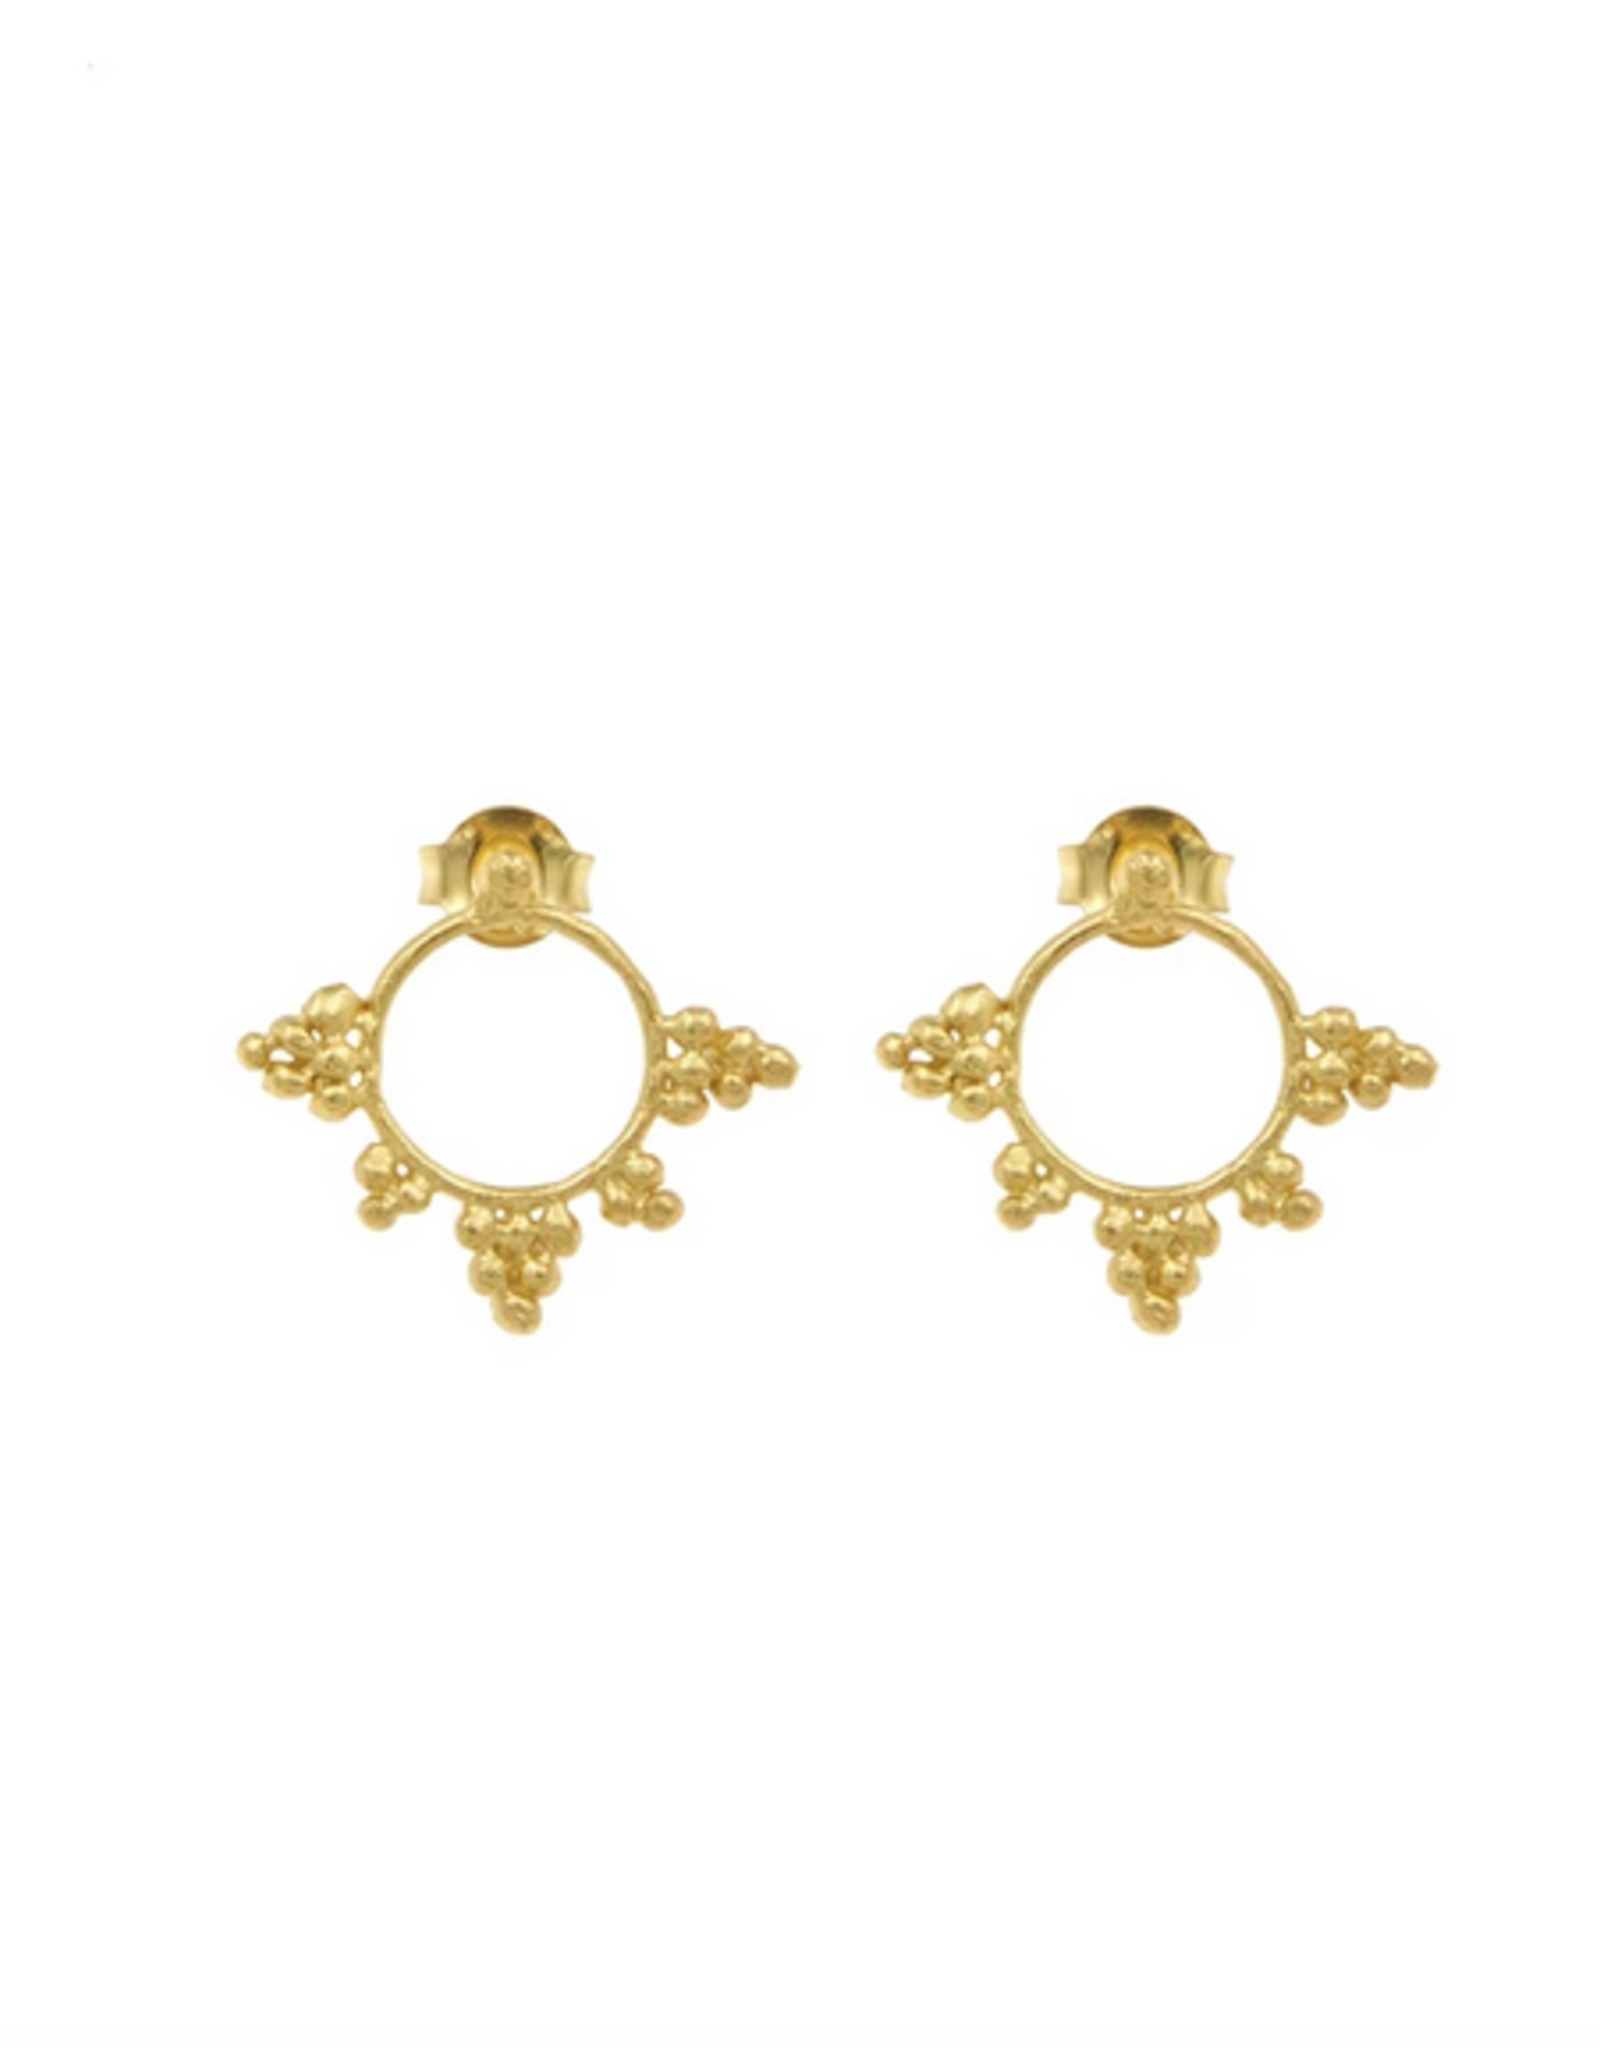 Cleopatra's Bling Cleopatra's Bling Earring Gypsy Hoops Gold